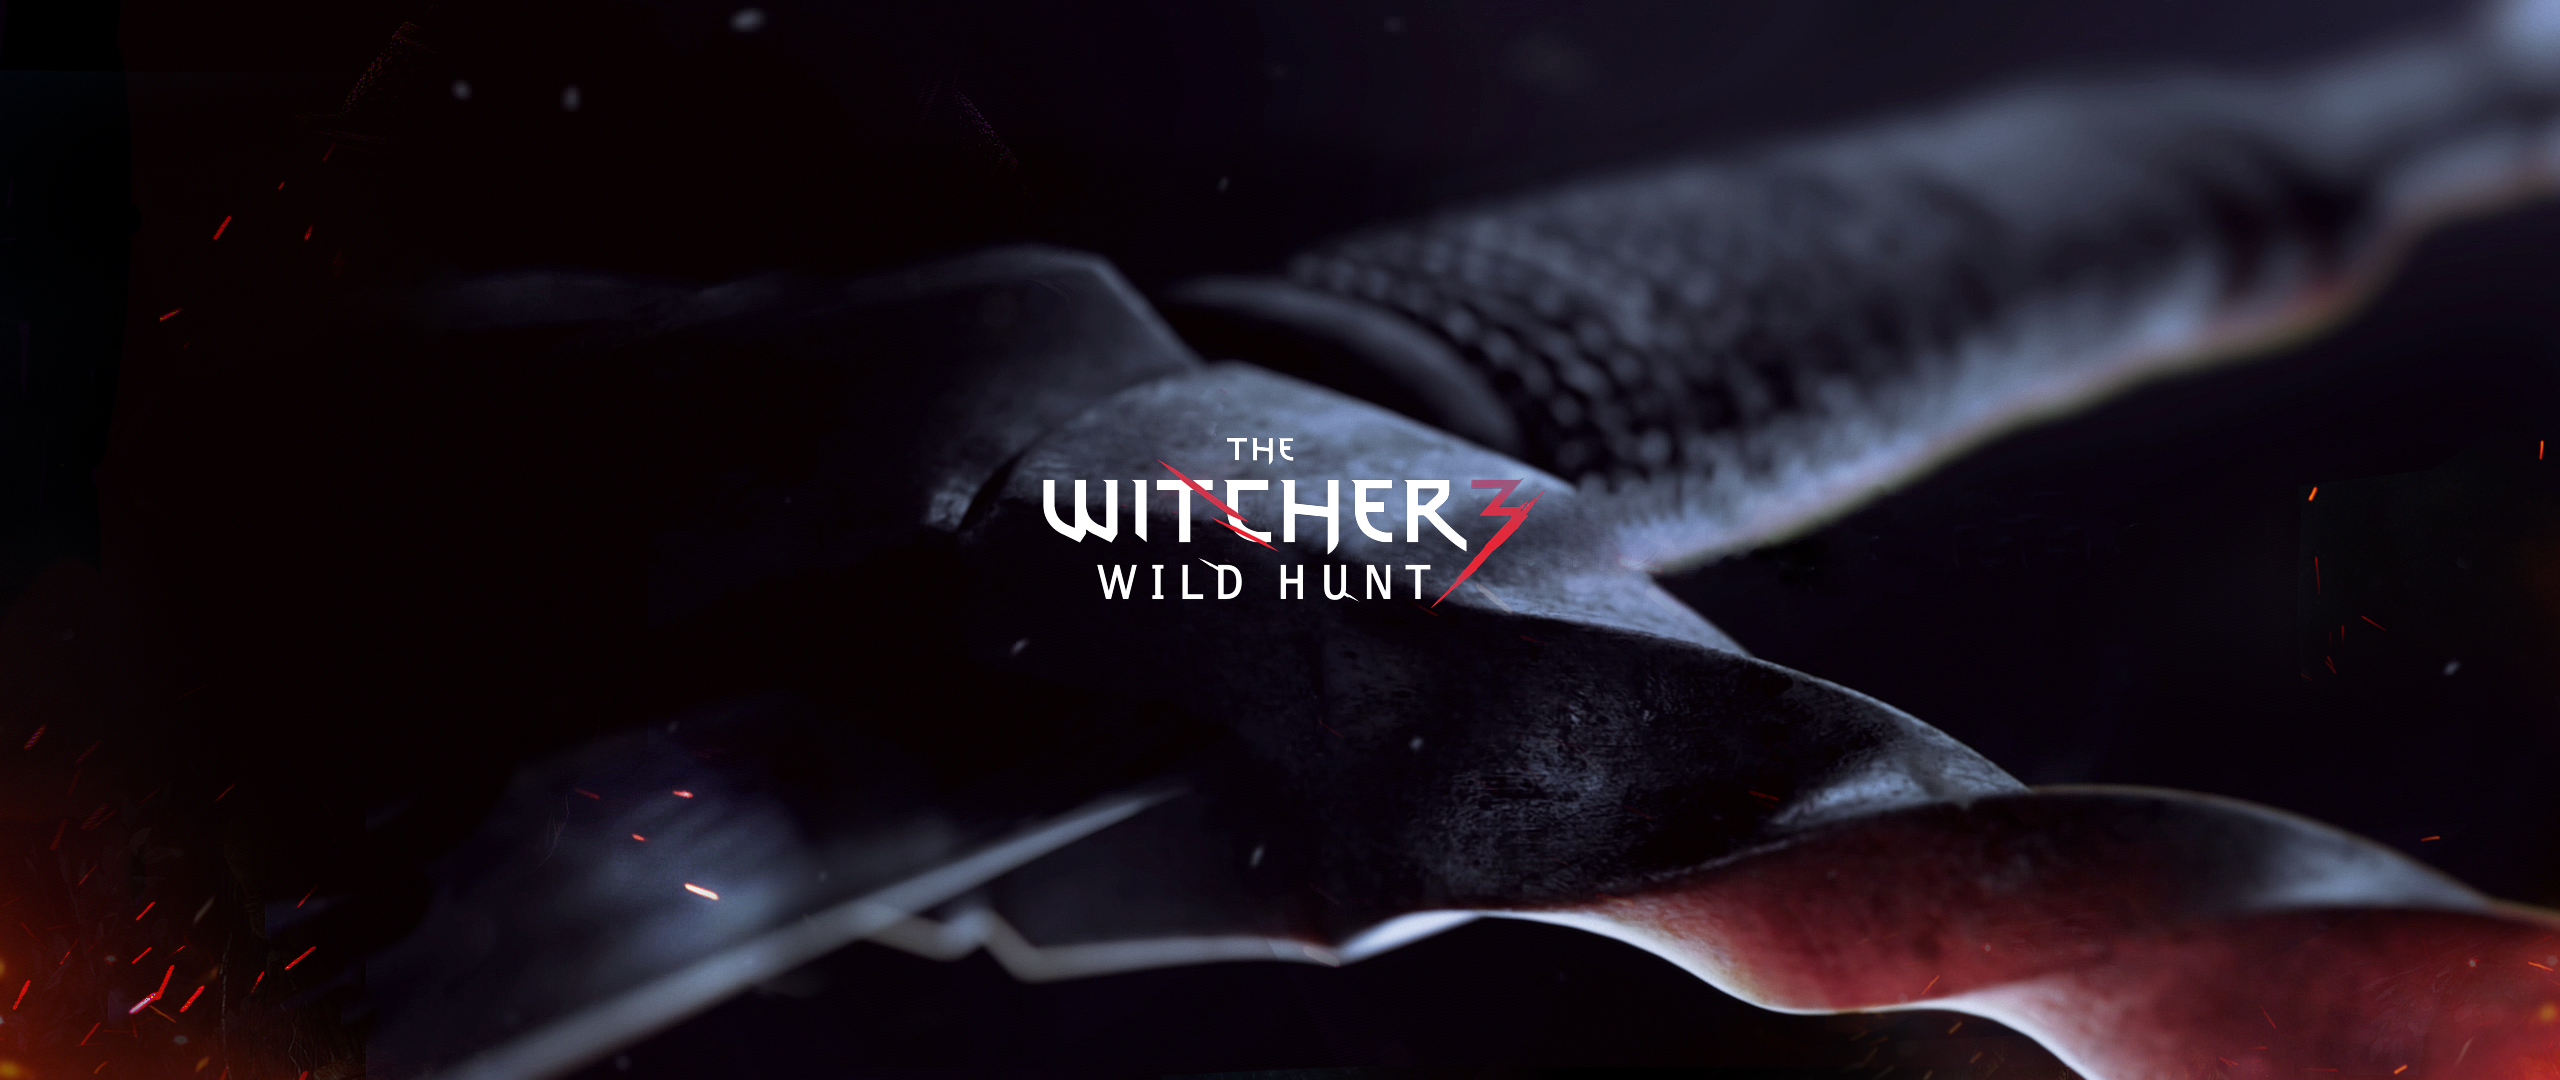 The-Witcher-x1080-wallpaper-wpc5809454